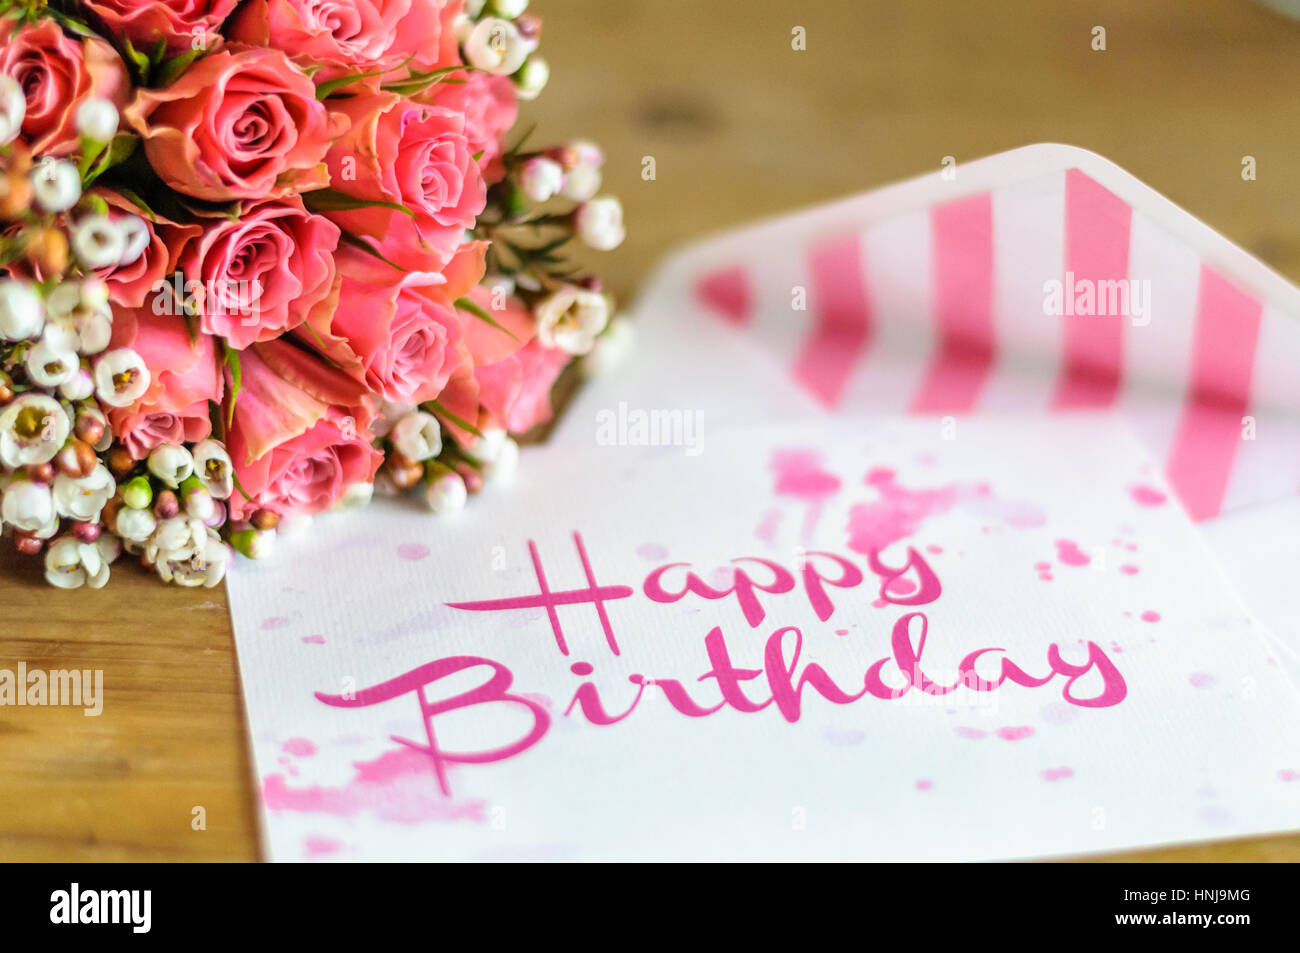 Happy birthday greeting card with color fitting bouquet of flowers happy birthday greeting card with color fitting bouquet of flowers izmirmasajfo